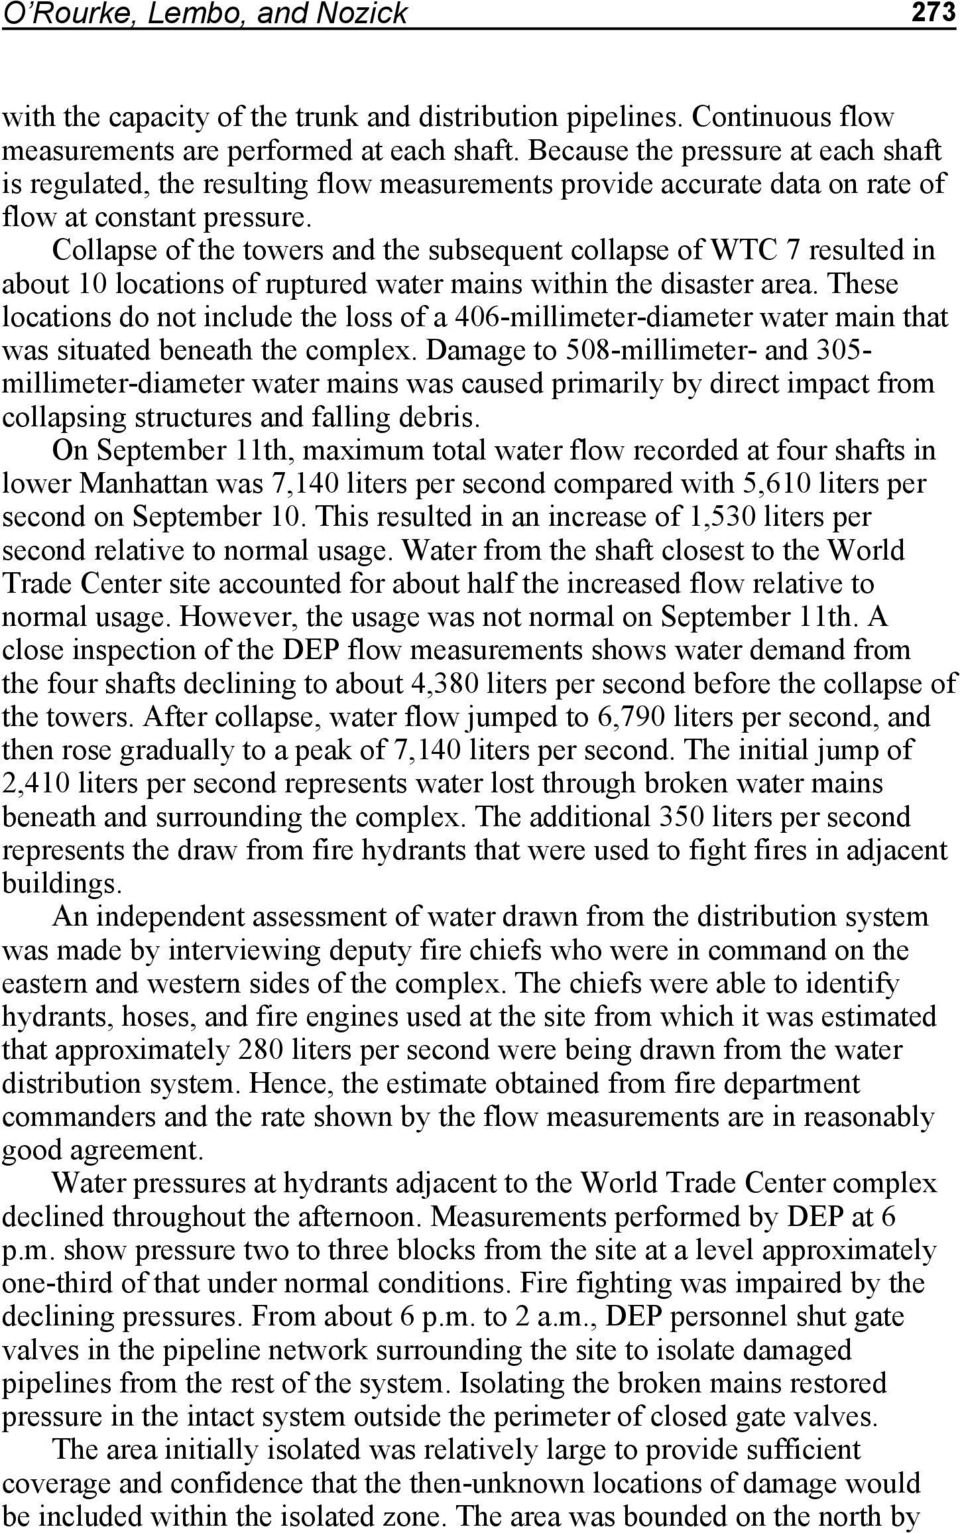 Collapse of the towers and the subsequent collapse of WTC 7 resulted in about 10 locations of ruptured water mains within the disaster area.